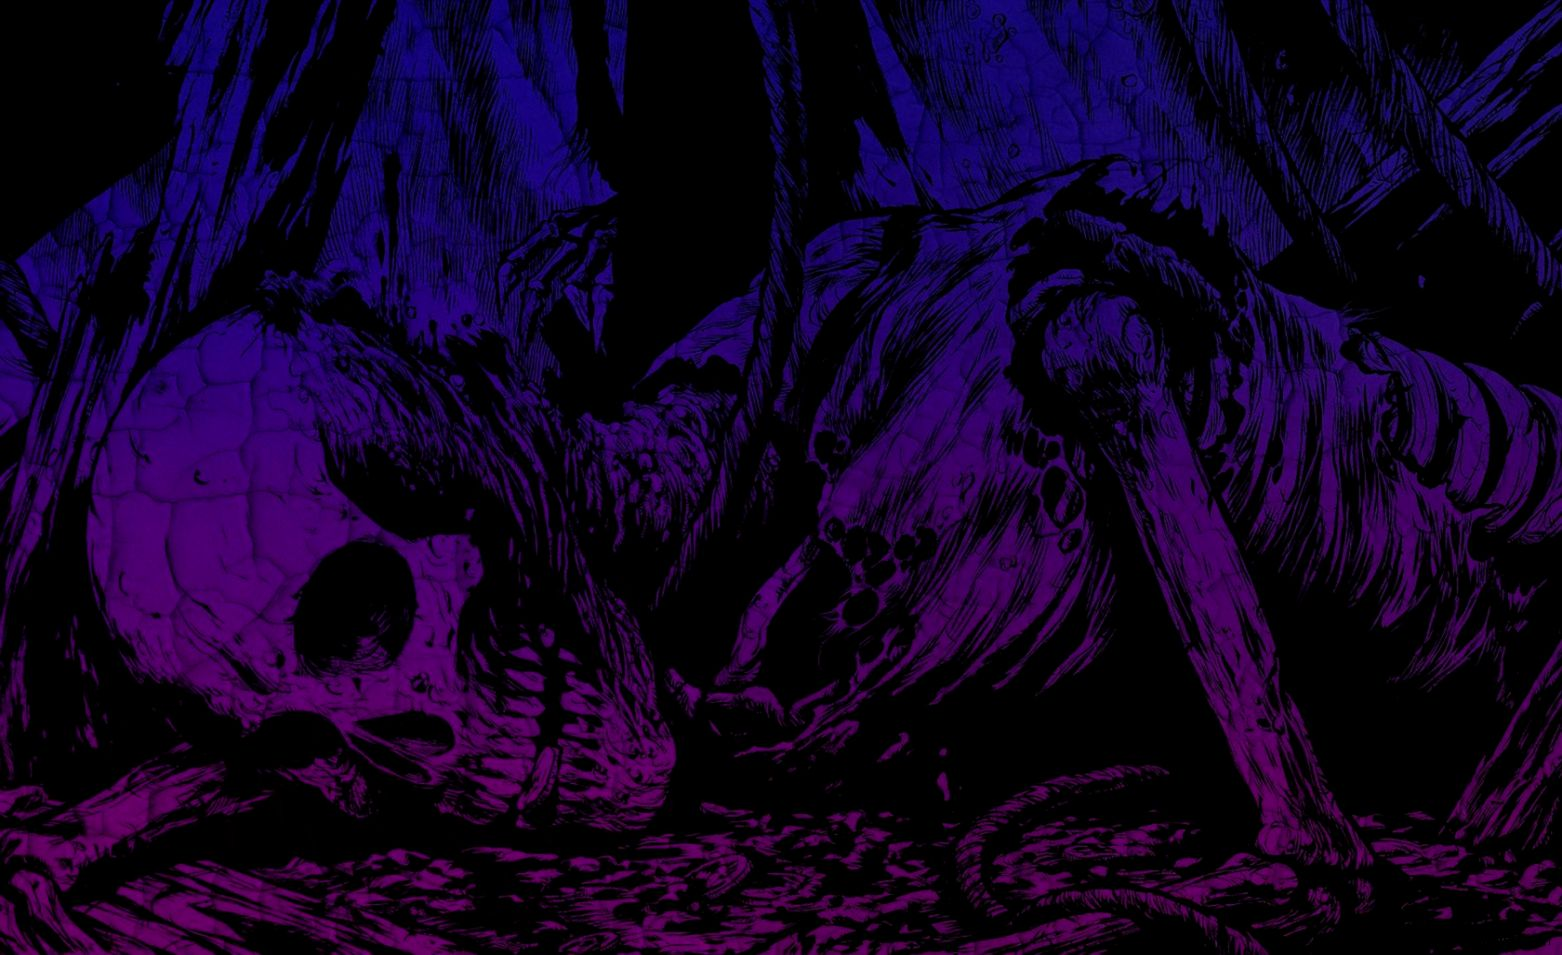 purple skull wallpaper | cool hd wallpapers